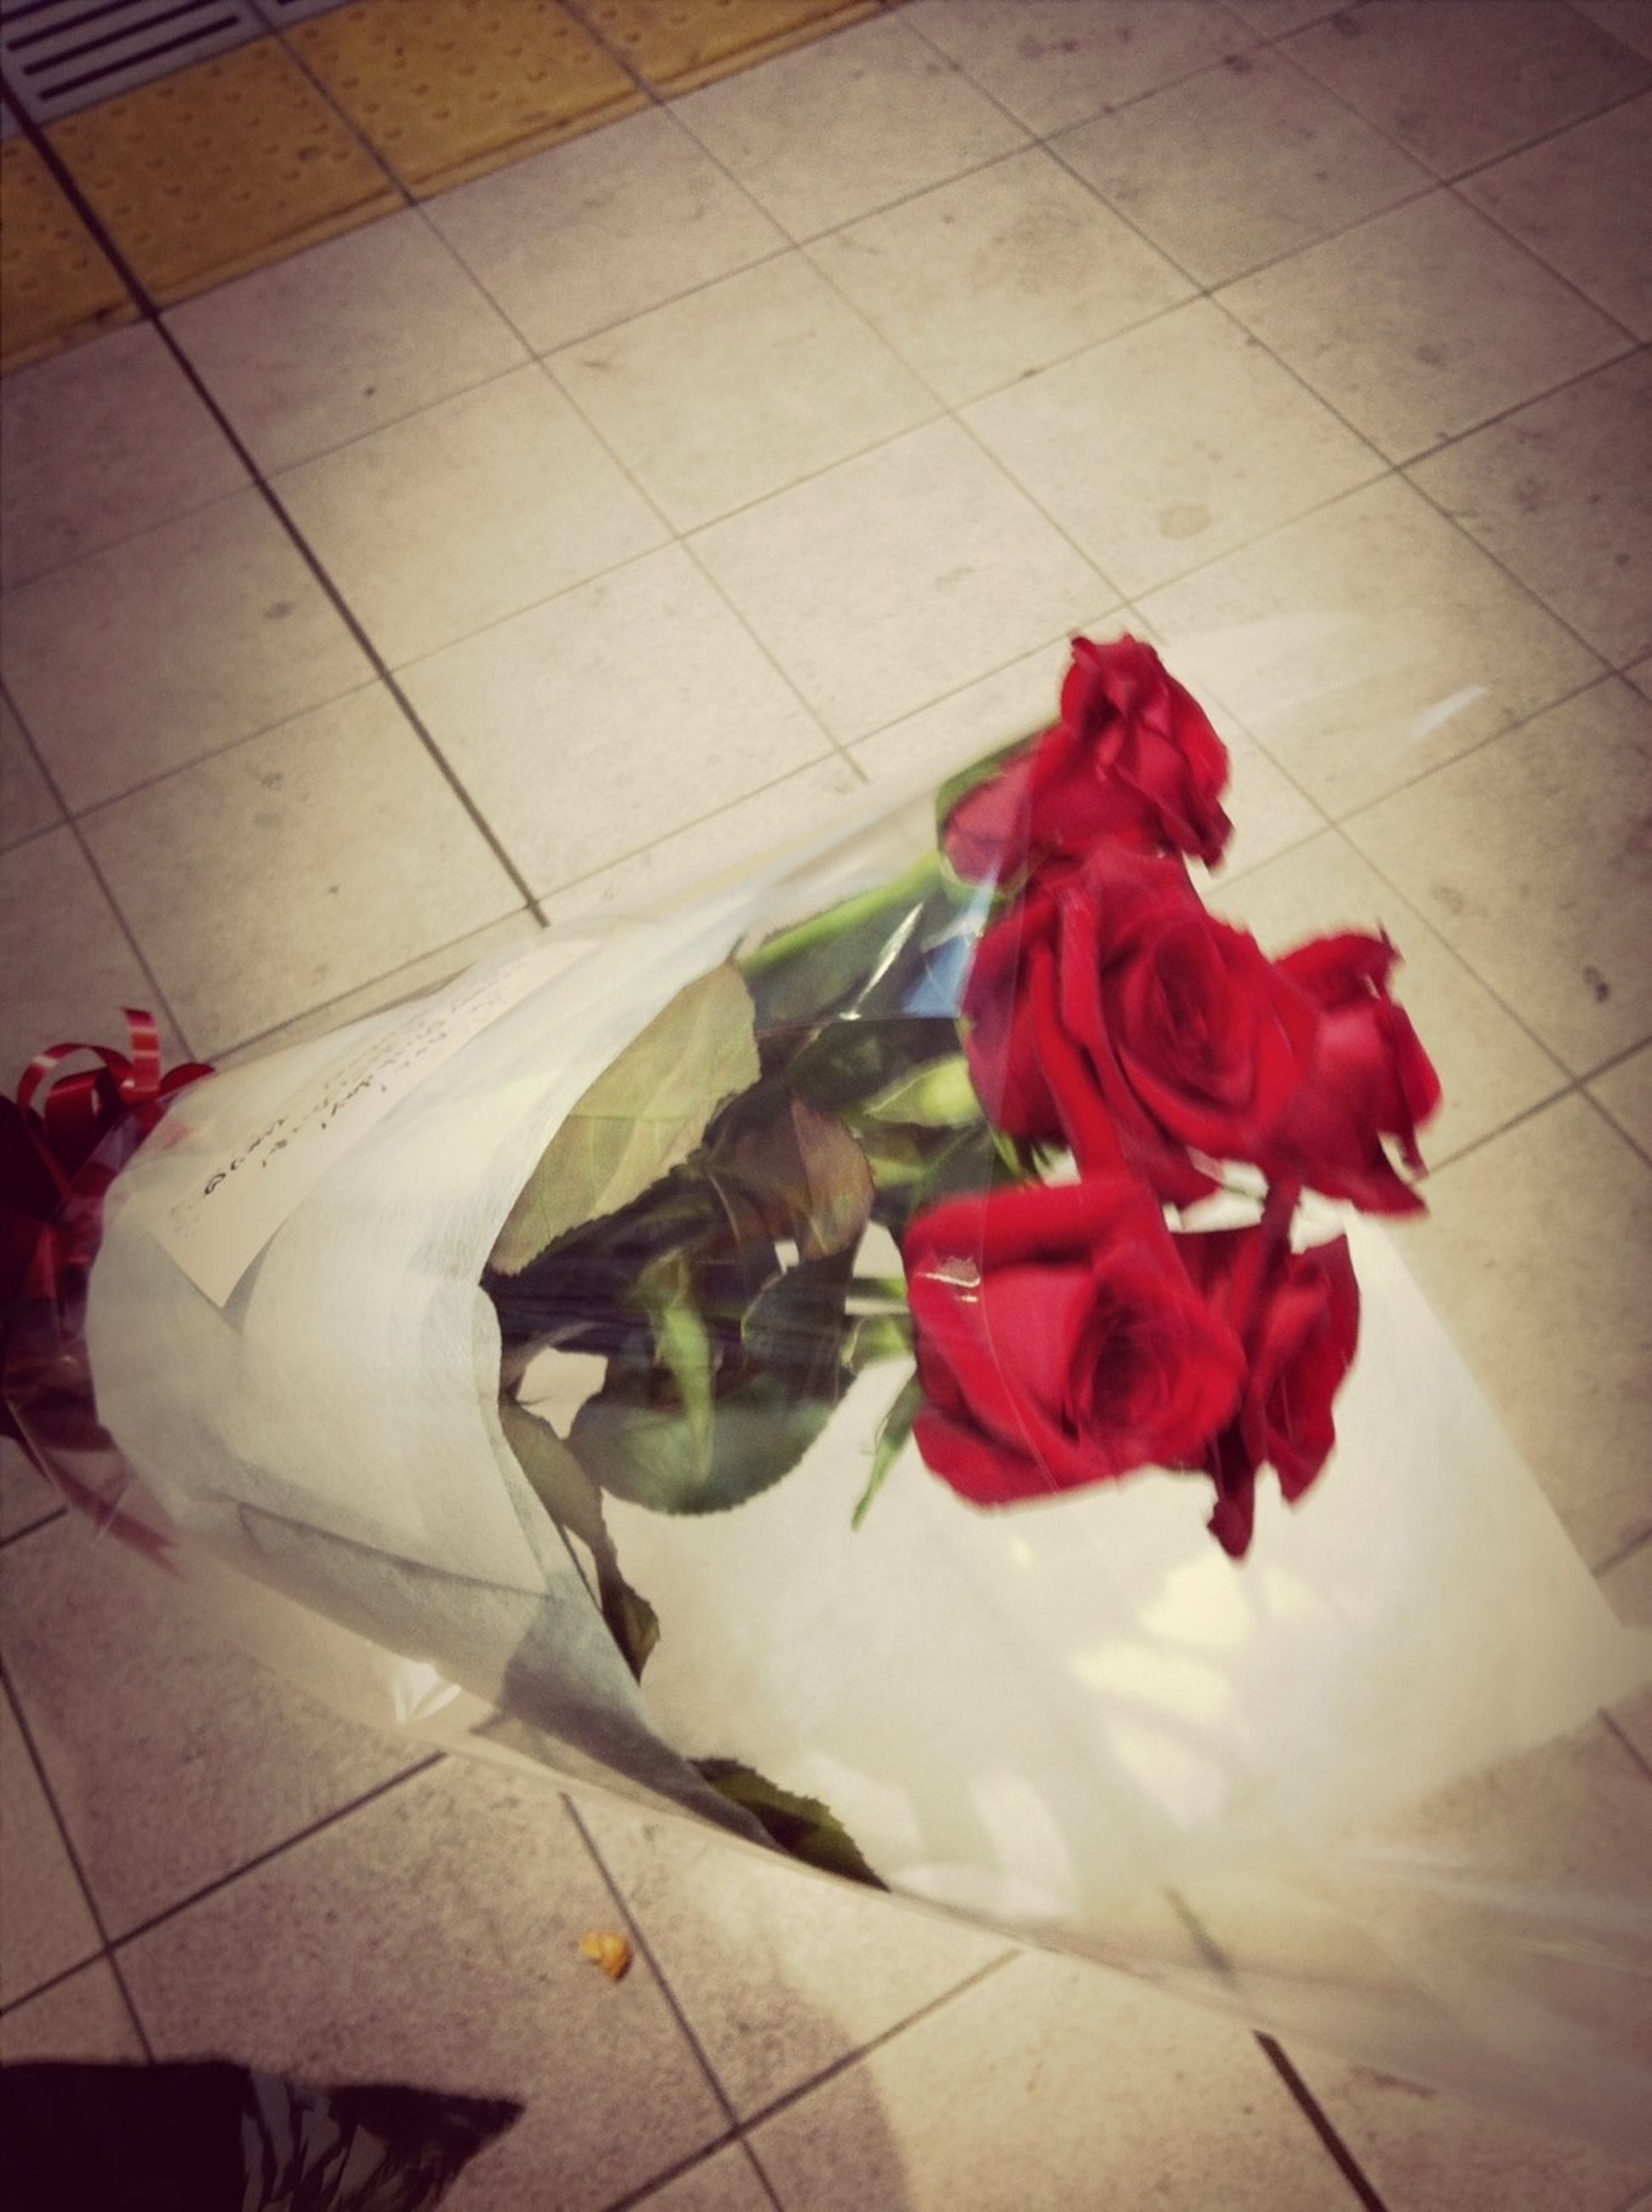 flower, petal, high angle view, indoors, tiled floor, red, freshness, fragility, rose - flower, sunlight, flower head, shadow, flooring, day, no people, white color, tile, vase, pink color, decoration